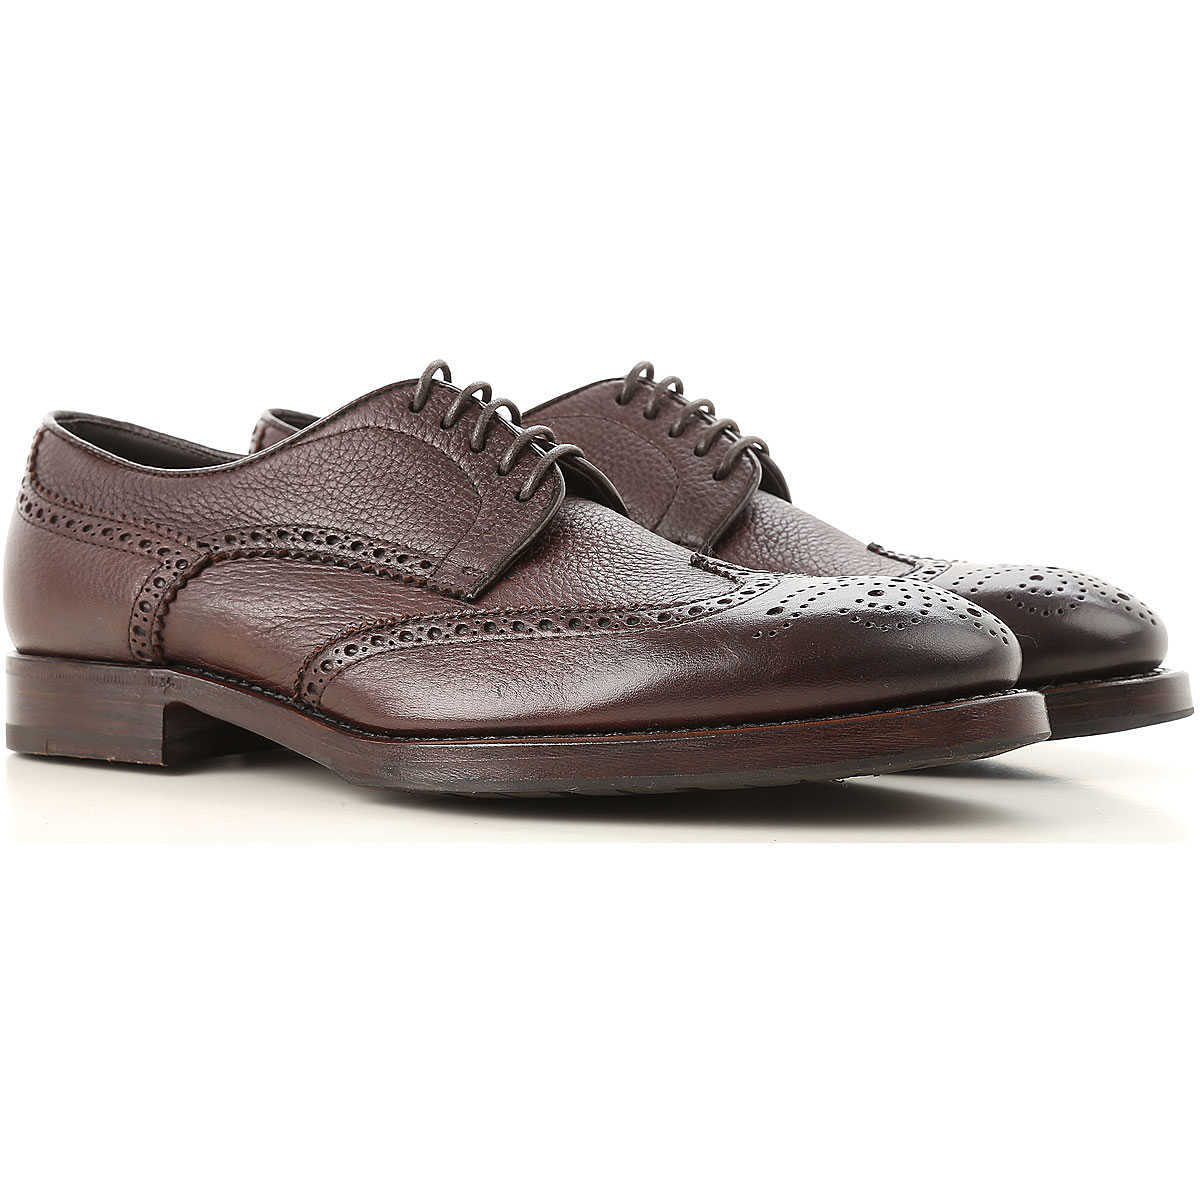 Henderson Lace Up Shoes for Men Oxfords Derbies and Brogues On Sale - GOOFASH